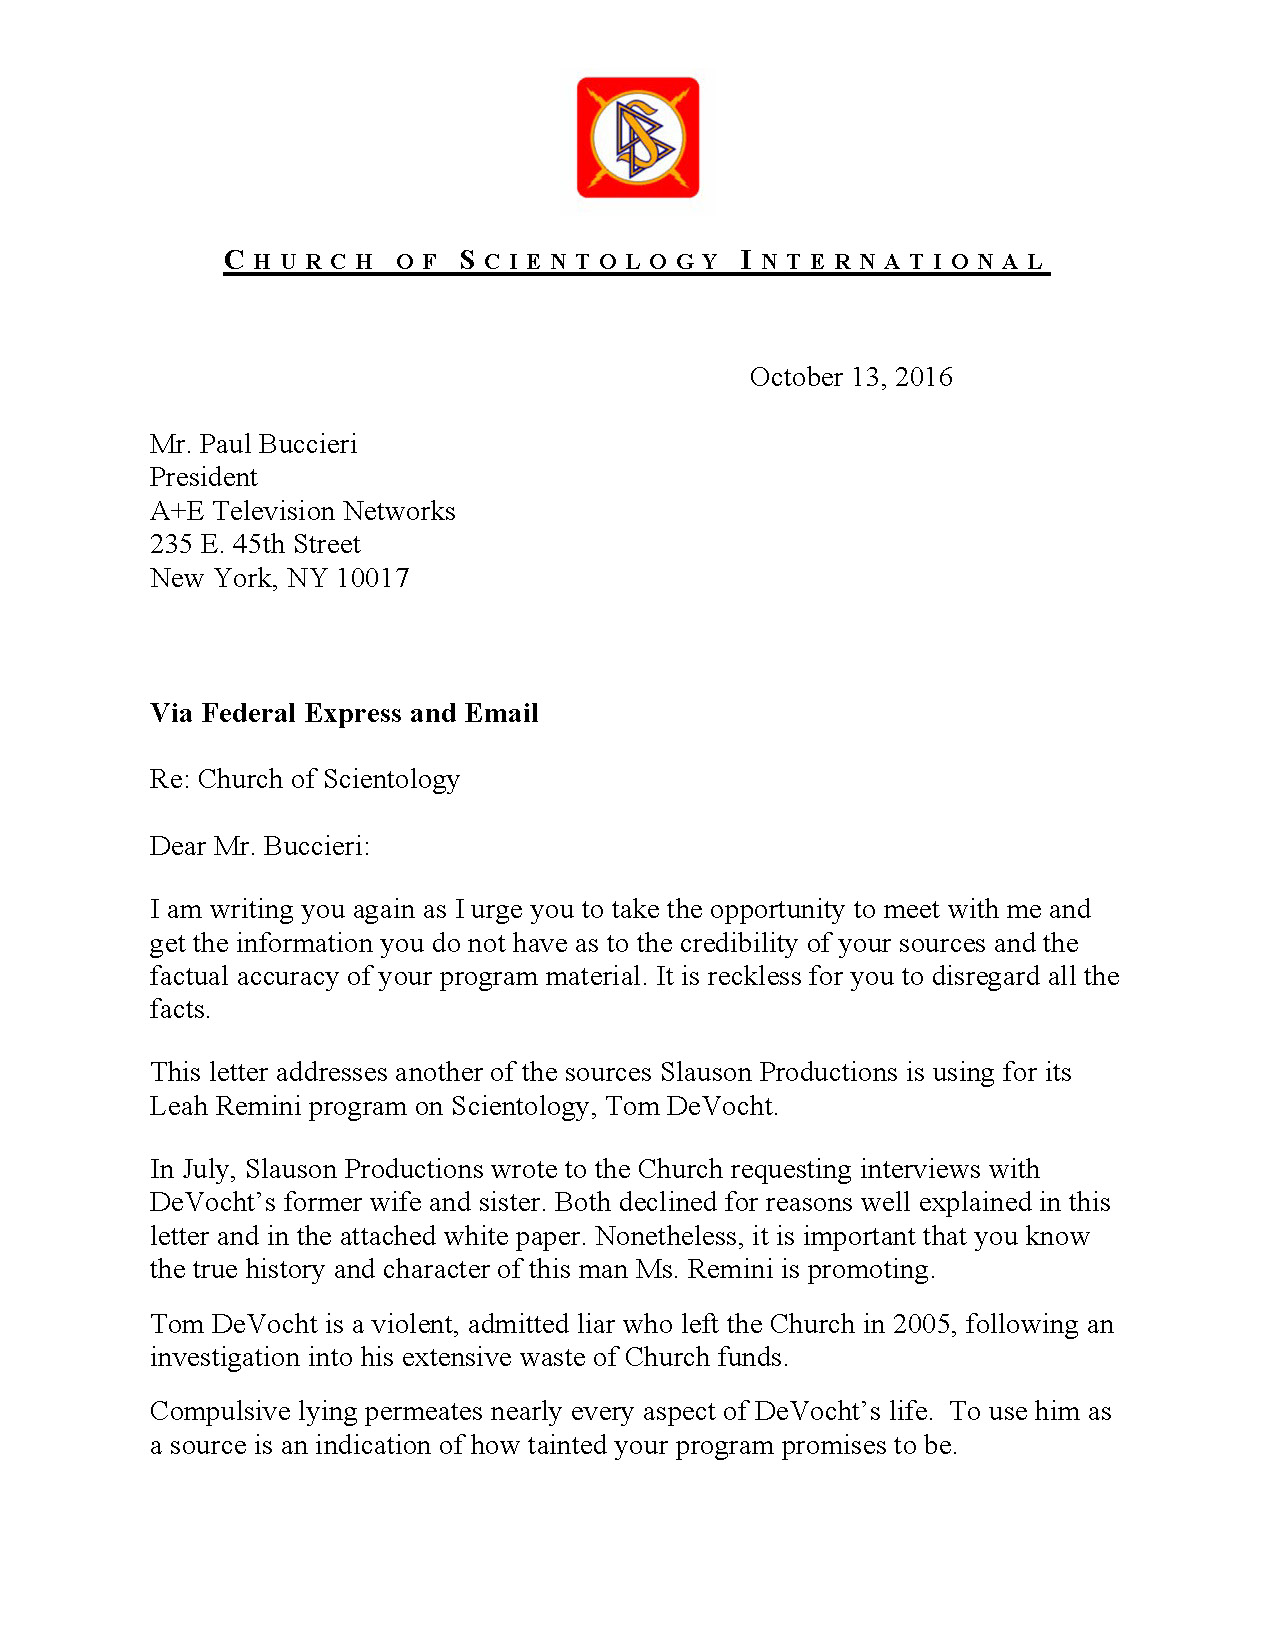 Letter from csi to ae networks re tom devocht thecheapjerseys Gallery